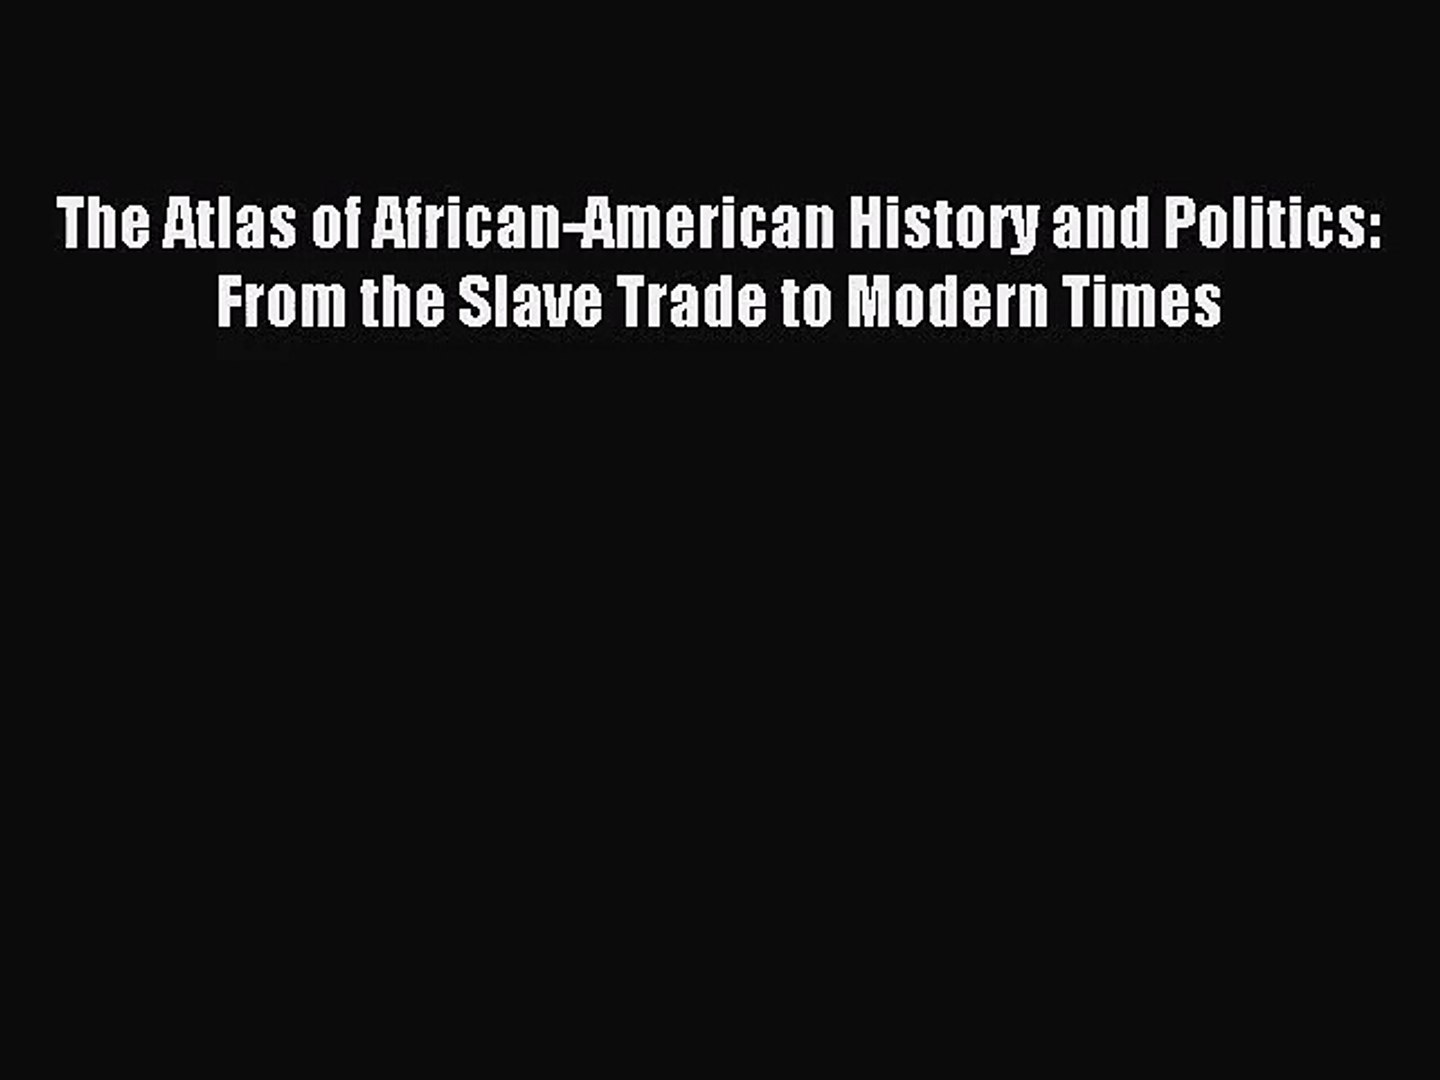 (PDF Download) The Atlas of African-American History and Politics: From the Slave Trade to